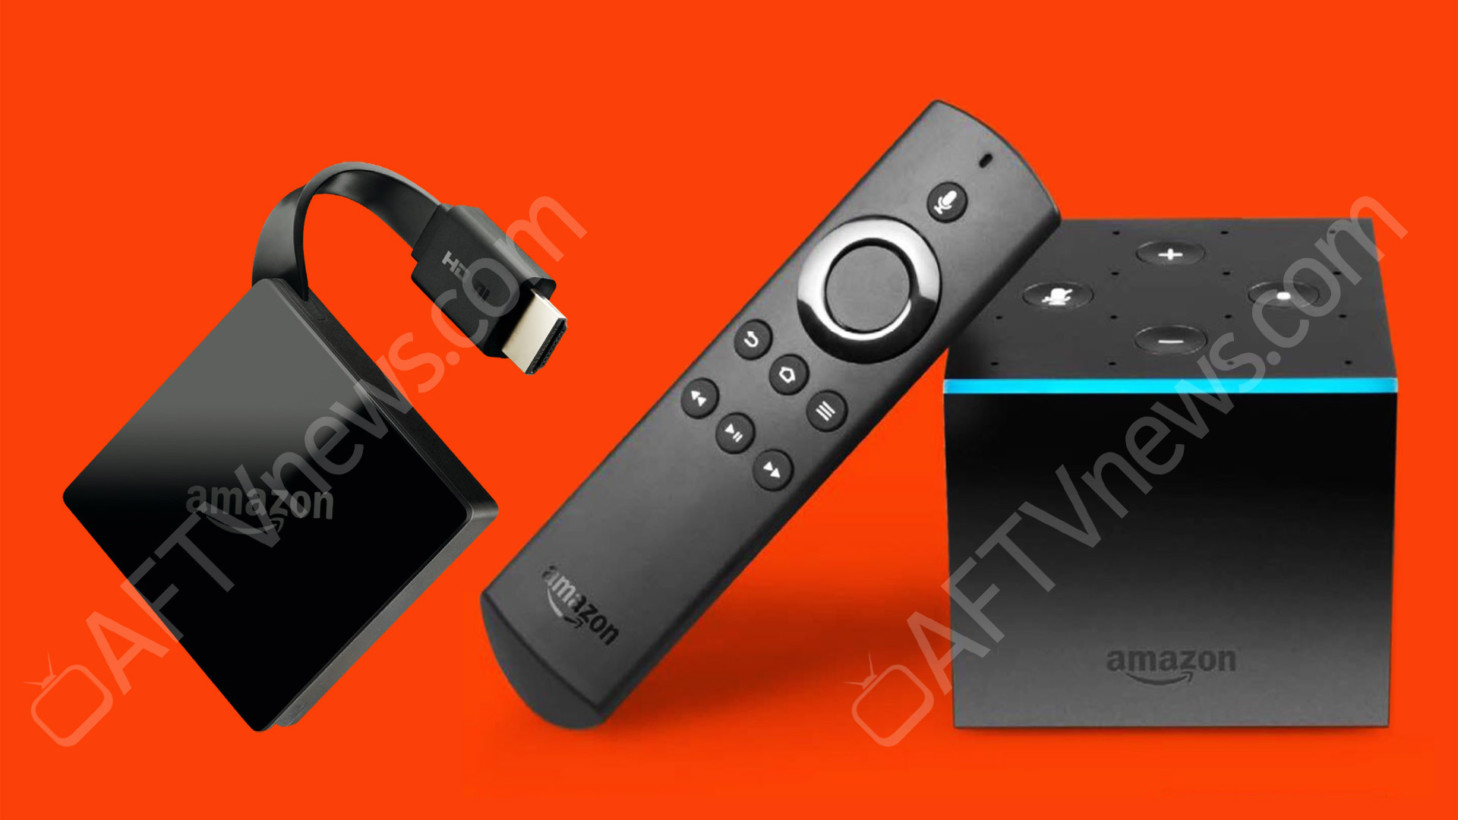 Dc5n United States It In English Created At 2017 09 12 0602 And Camera 2 Gauge Amp Wiring Kit Soundtech New Zealand Auckland Amazons Next Flagship Fire Tv Will Come With Advanced Voice Assistant Capabilities According To A Report By Aftvnews If The Leak Holds Up